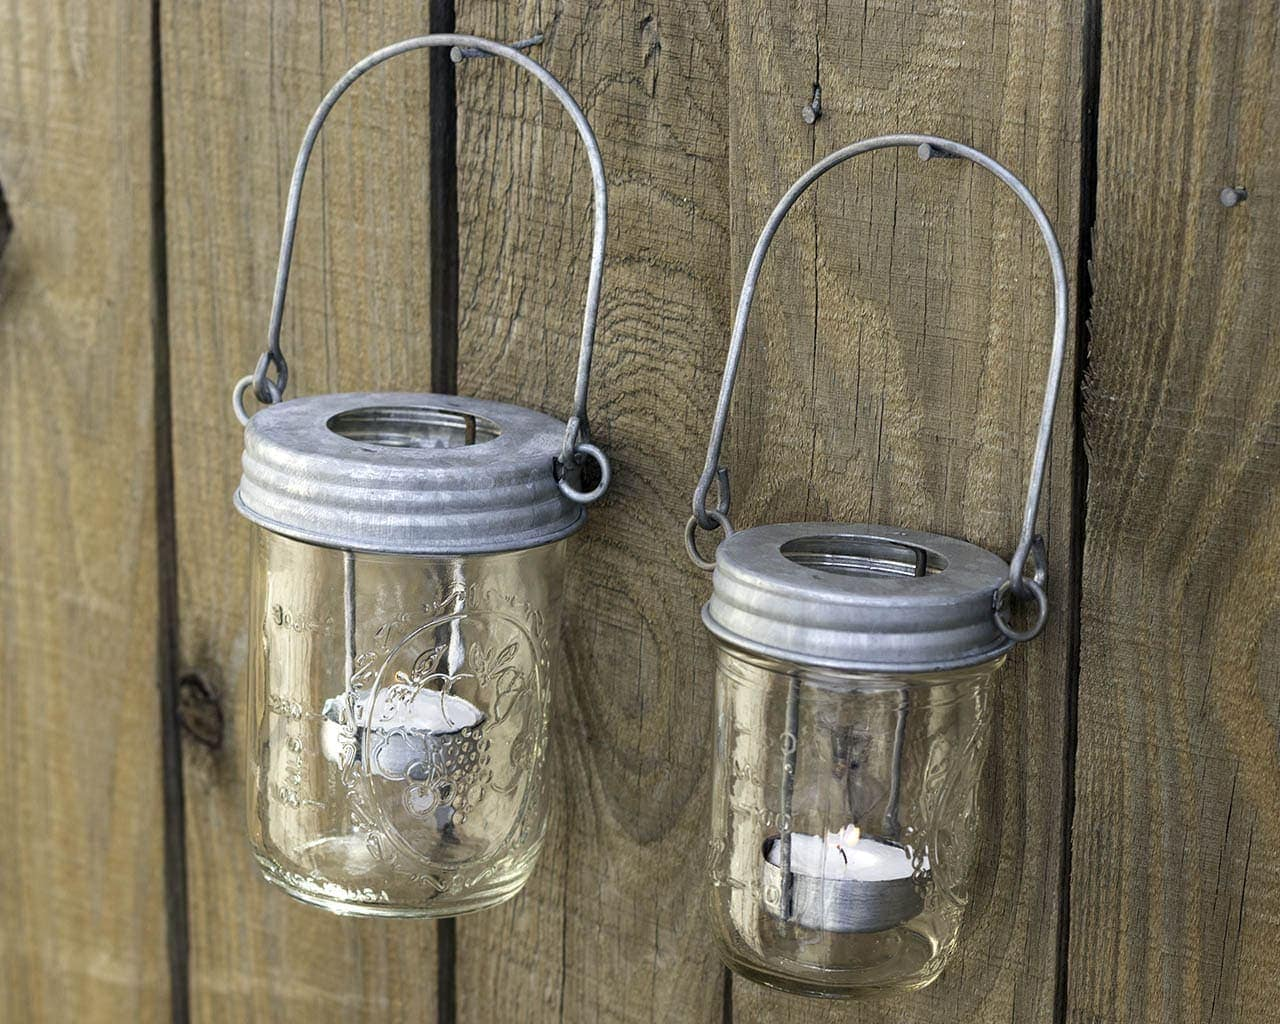 Galvanized Metal Tea Light Candle Holder Lids With Handles For Mason Jars 3 Pack